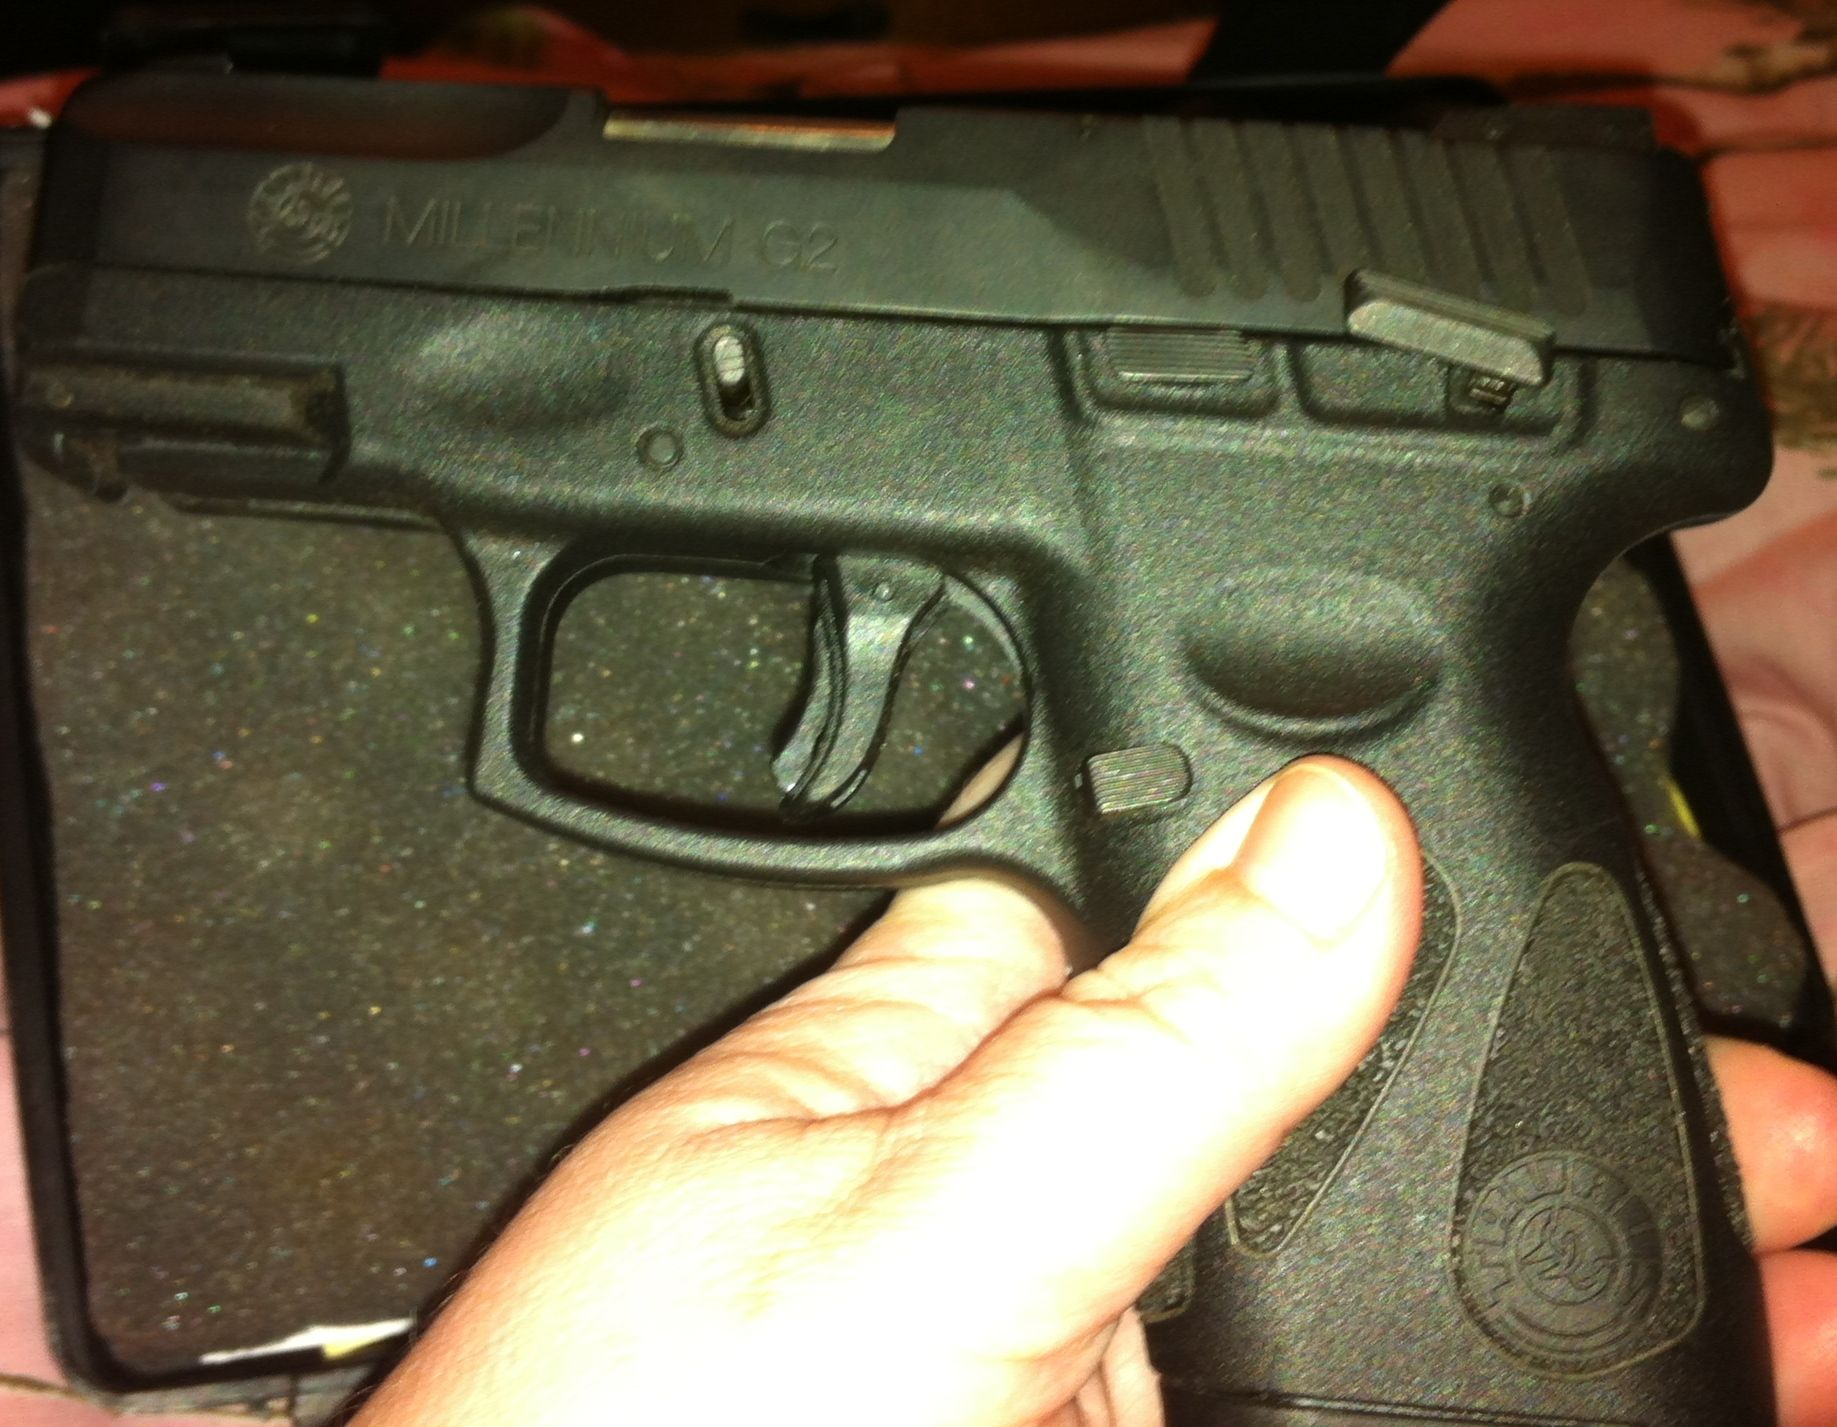 Taurus Millennium G2 Pt111 Gun Review By Kimberly Packin Granny 9mm Schematics Concealed Carry Weapons Guns